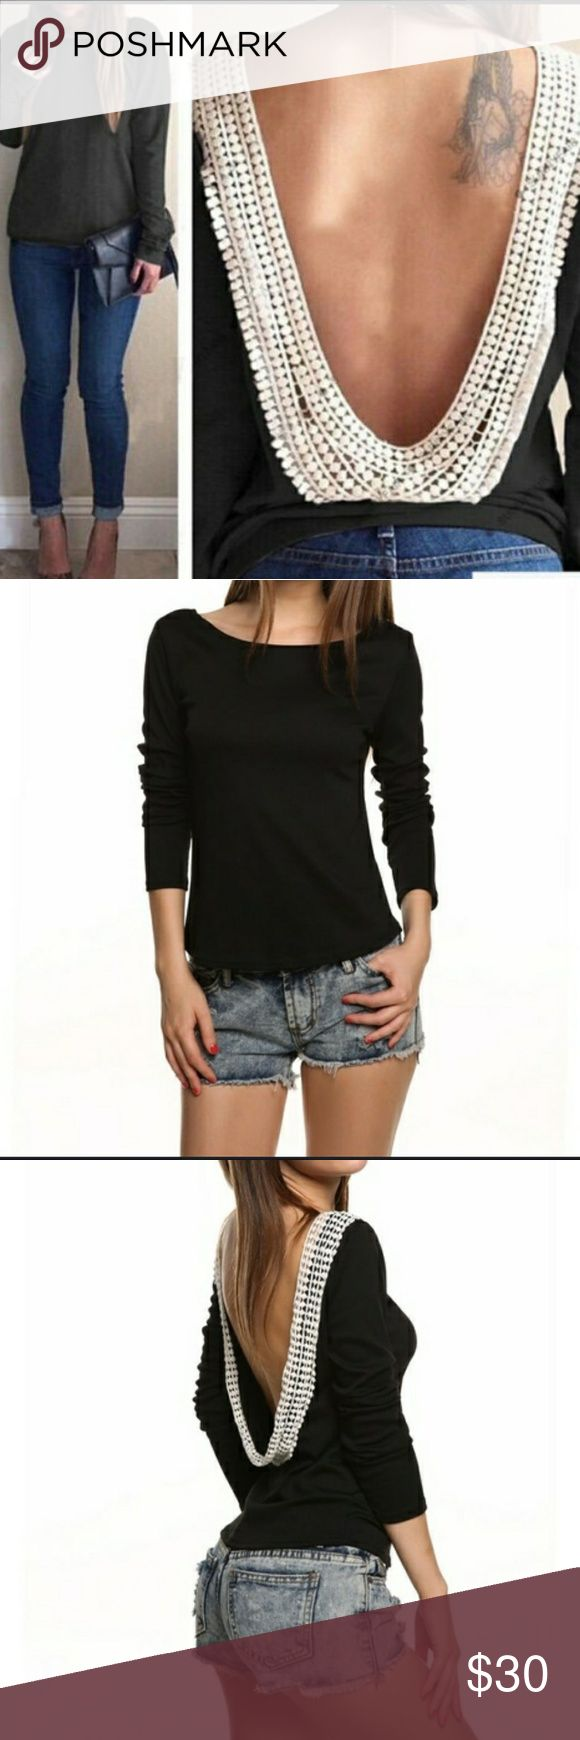 """Sexy backless top (embroidered trim) This blouse is absolutely breathtaking!  Looks like an ordinary top from the front....turn around to reveal beautiful embroidery outlining the """"u"""" back.  Polyester/cotton blend Tops"""